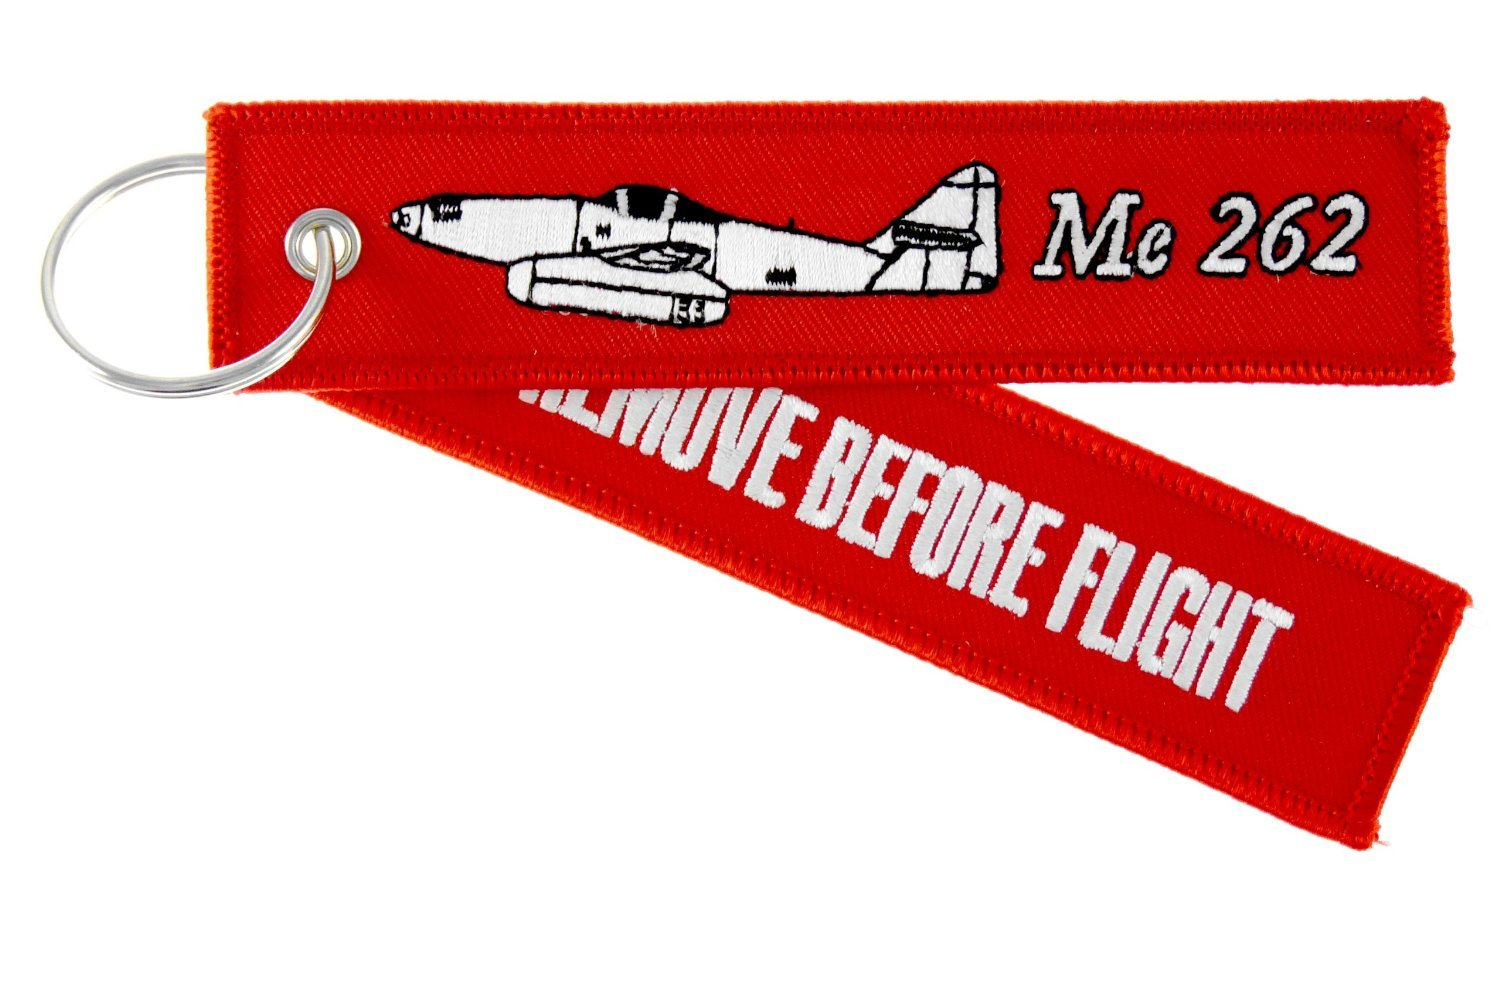 RUNWAY CONCEPT 2011 airliners.de Llavero - REMOVE BEFORE FLIGHT - Messerschmitt Me 262 Schwalbe (golondrina)